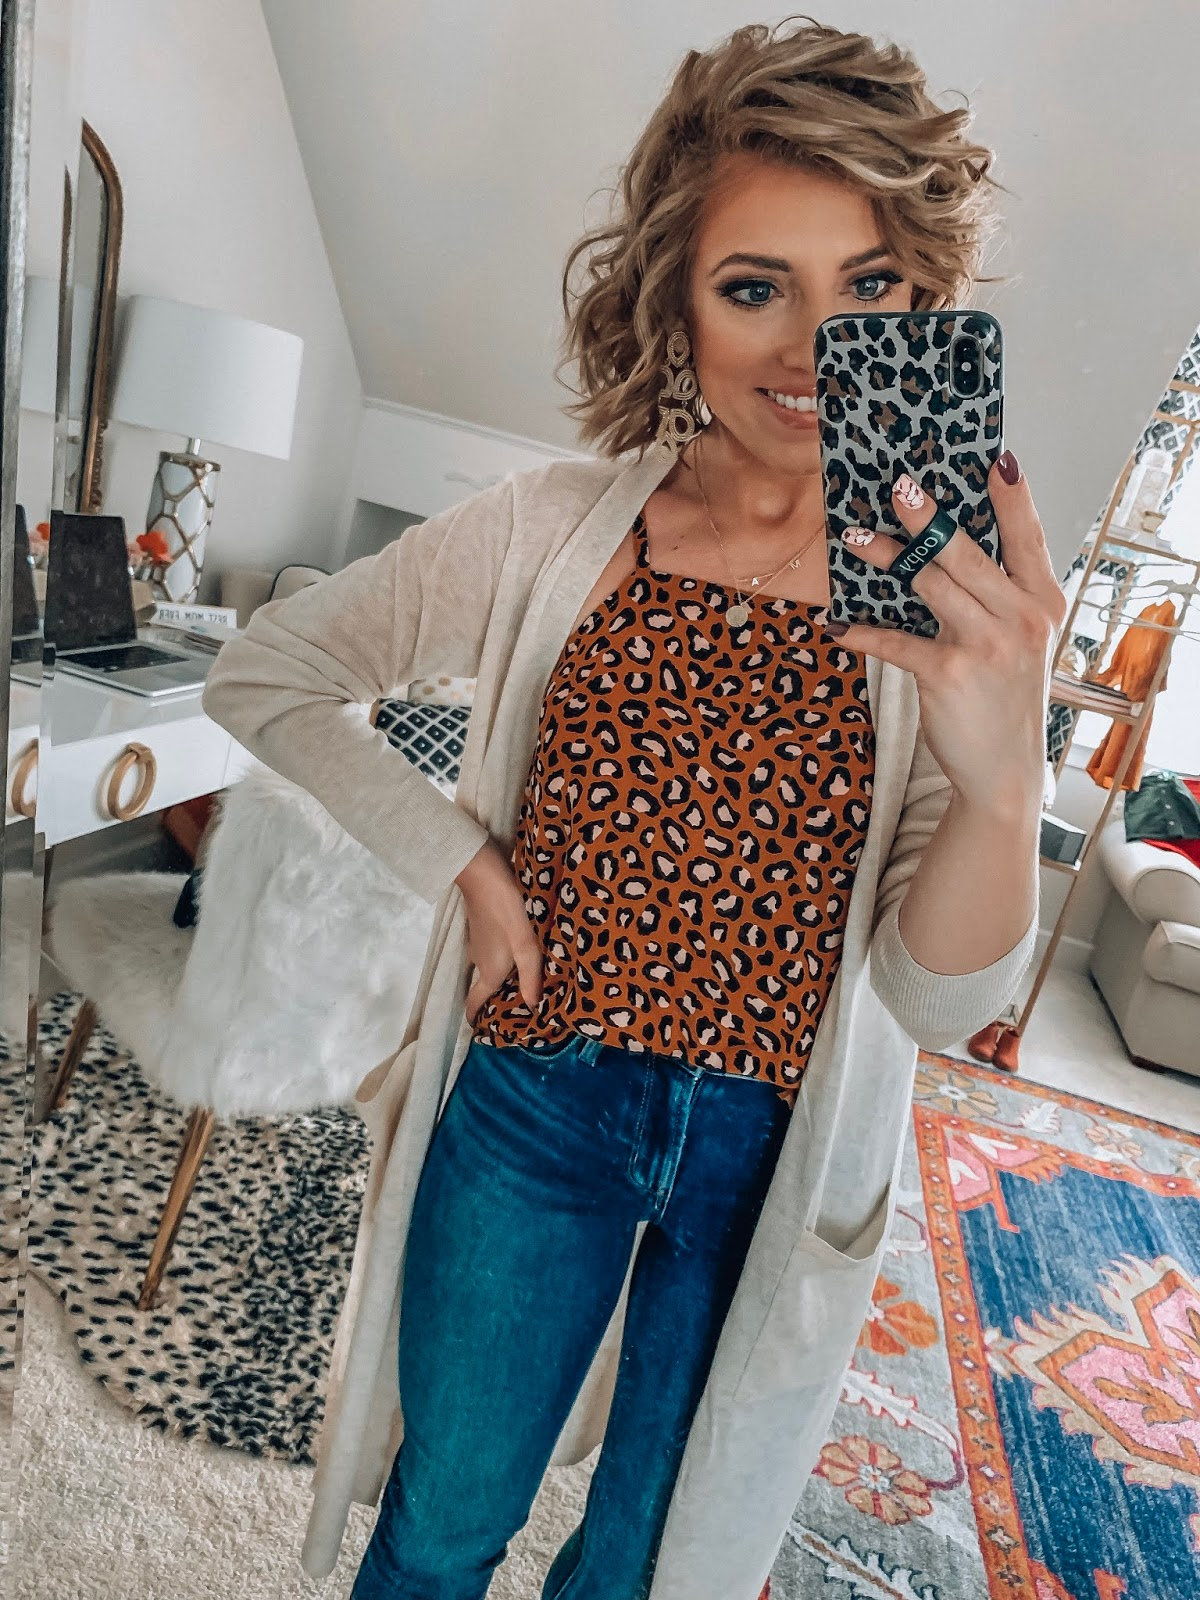 Old Navy High Waist 24/7 Rockstar Jeans + Leopard Print Cami and Target Style Cardigan - Somethig Delightful Blog #affordablefashion